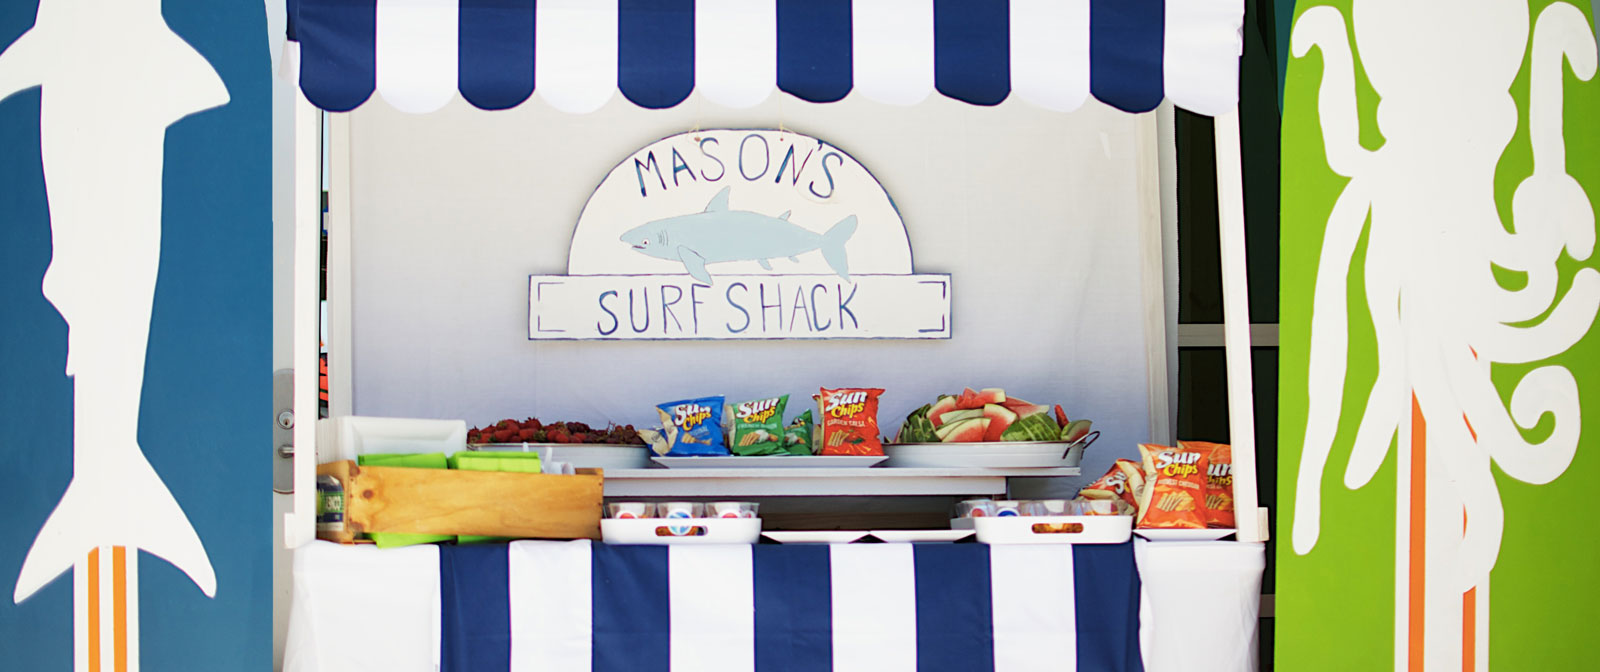 Dual Birthday Party: Surf Shack and Underwater Adventure